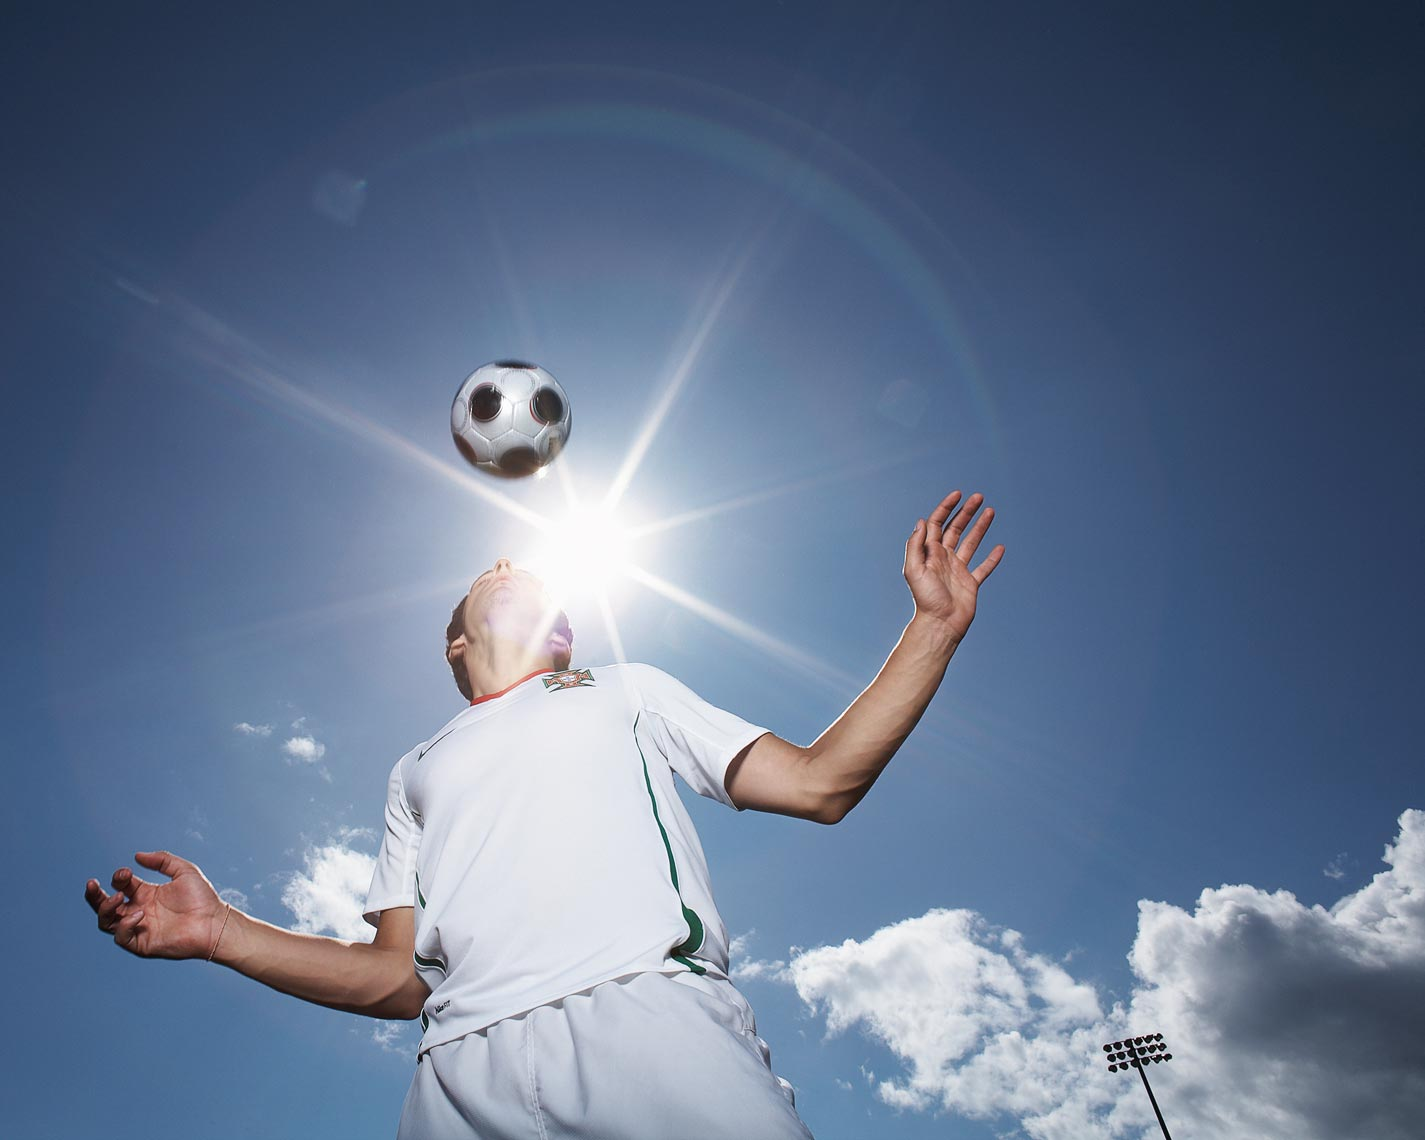 Soccer-Athlete-Action-Portrait.jpg